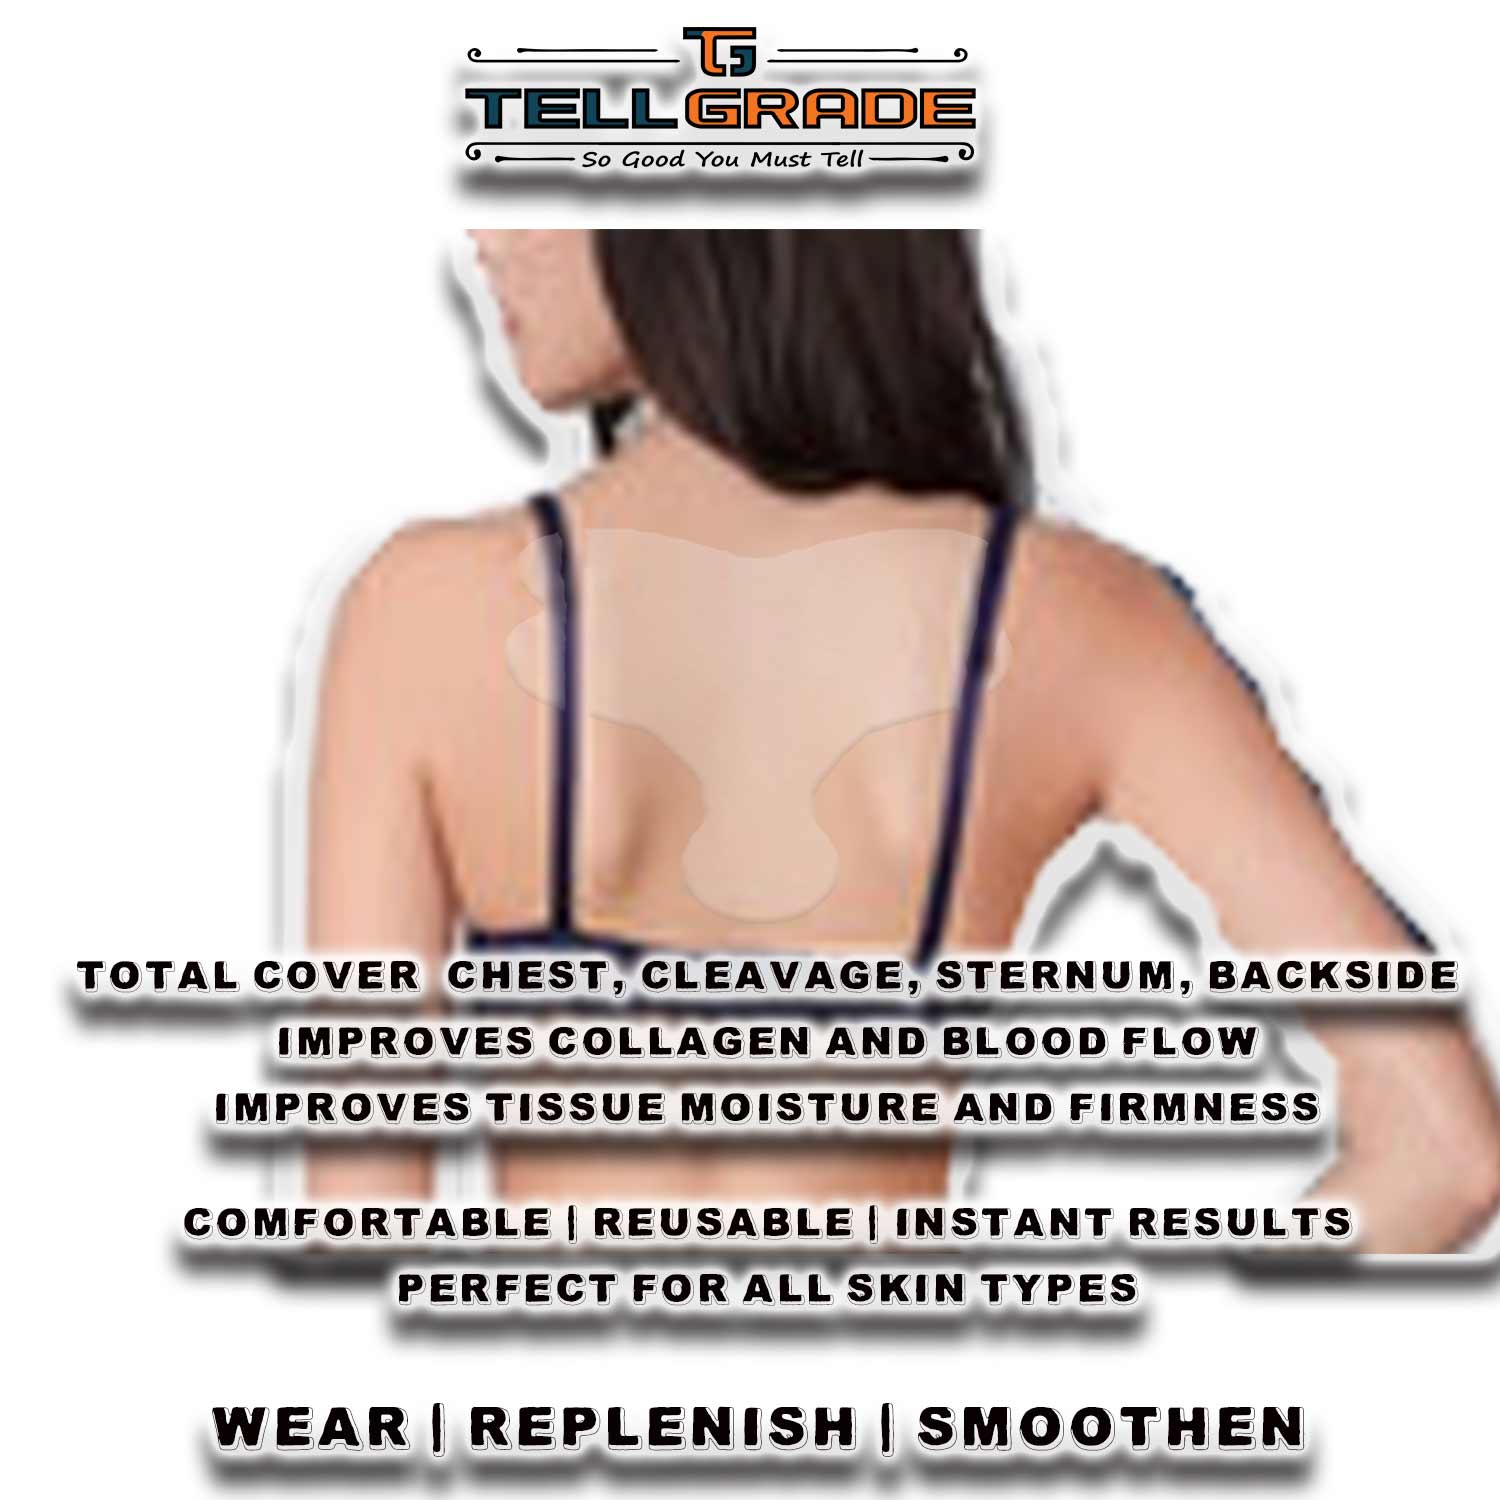 TellGrade Anti wrinkle Chest Pad Poster 4-a